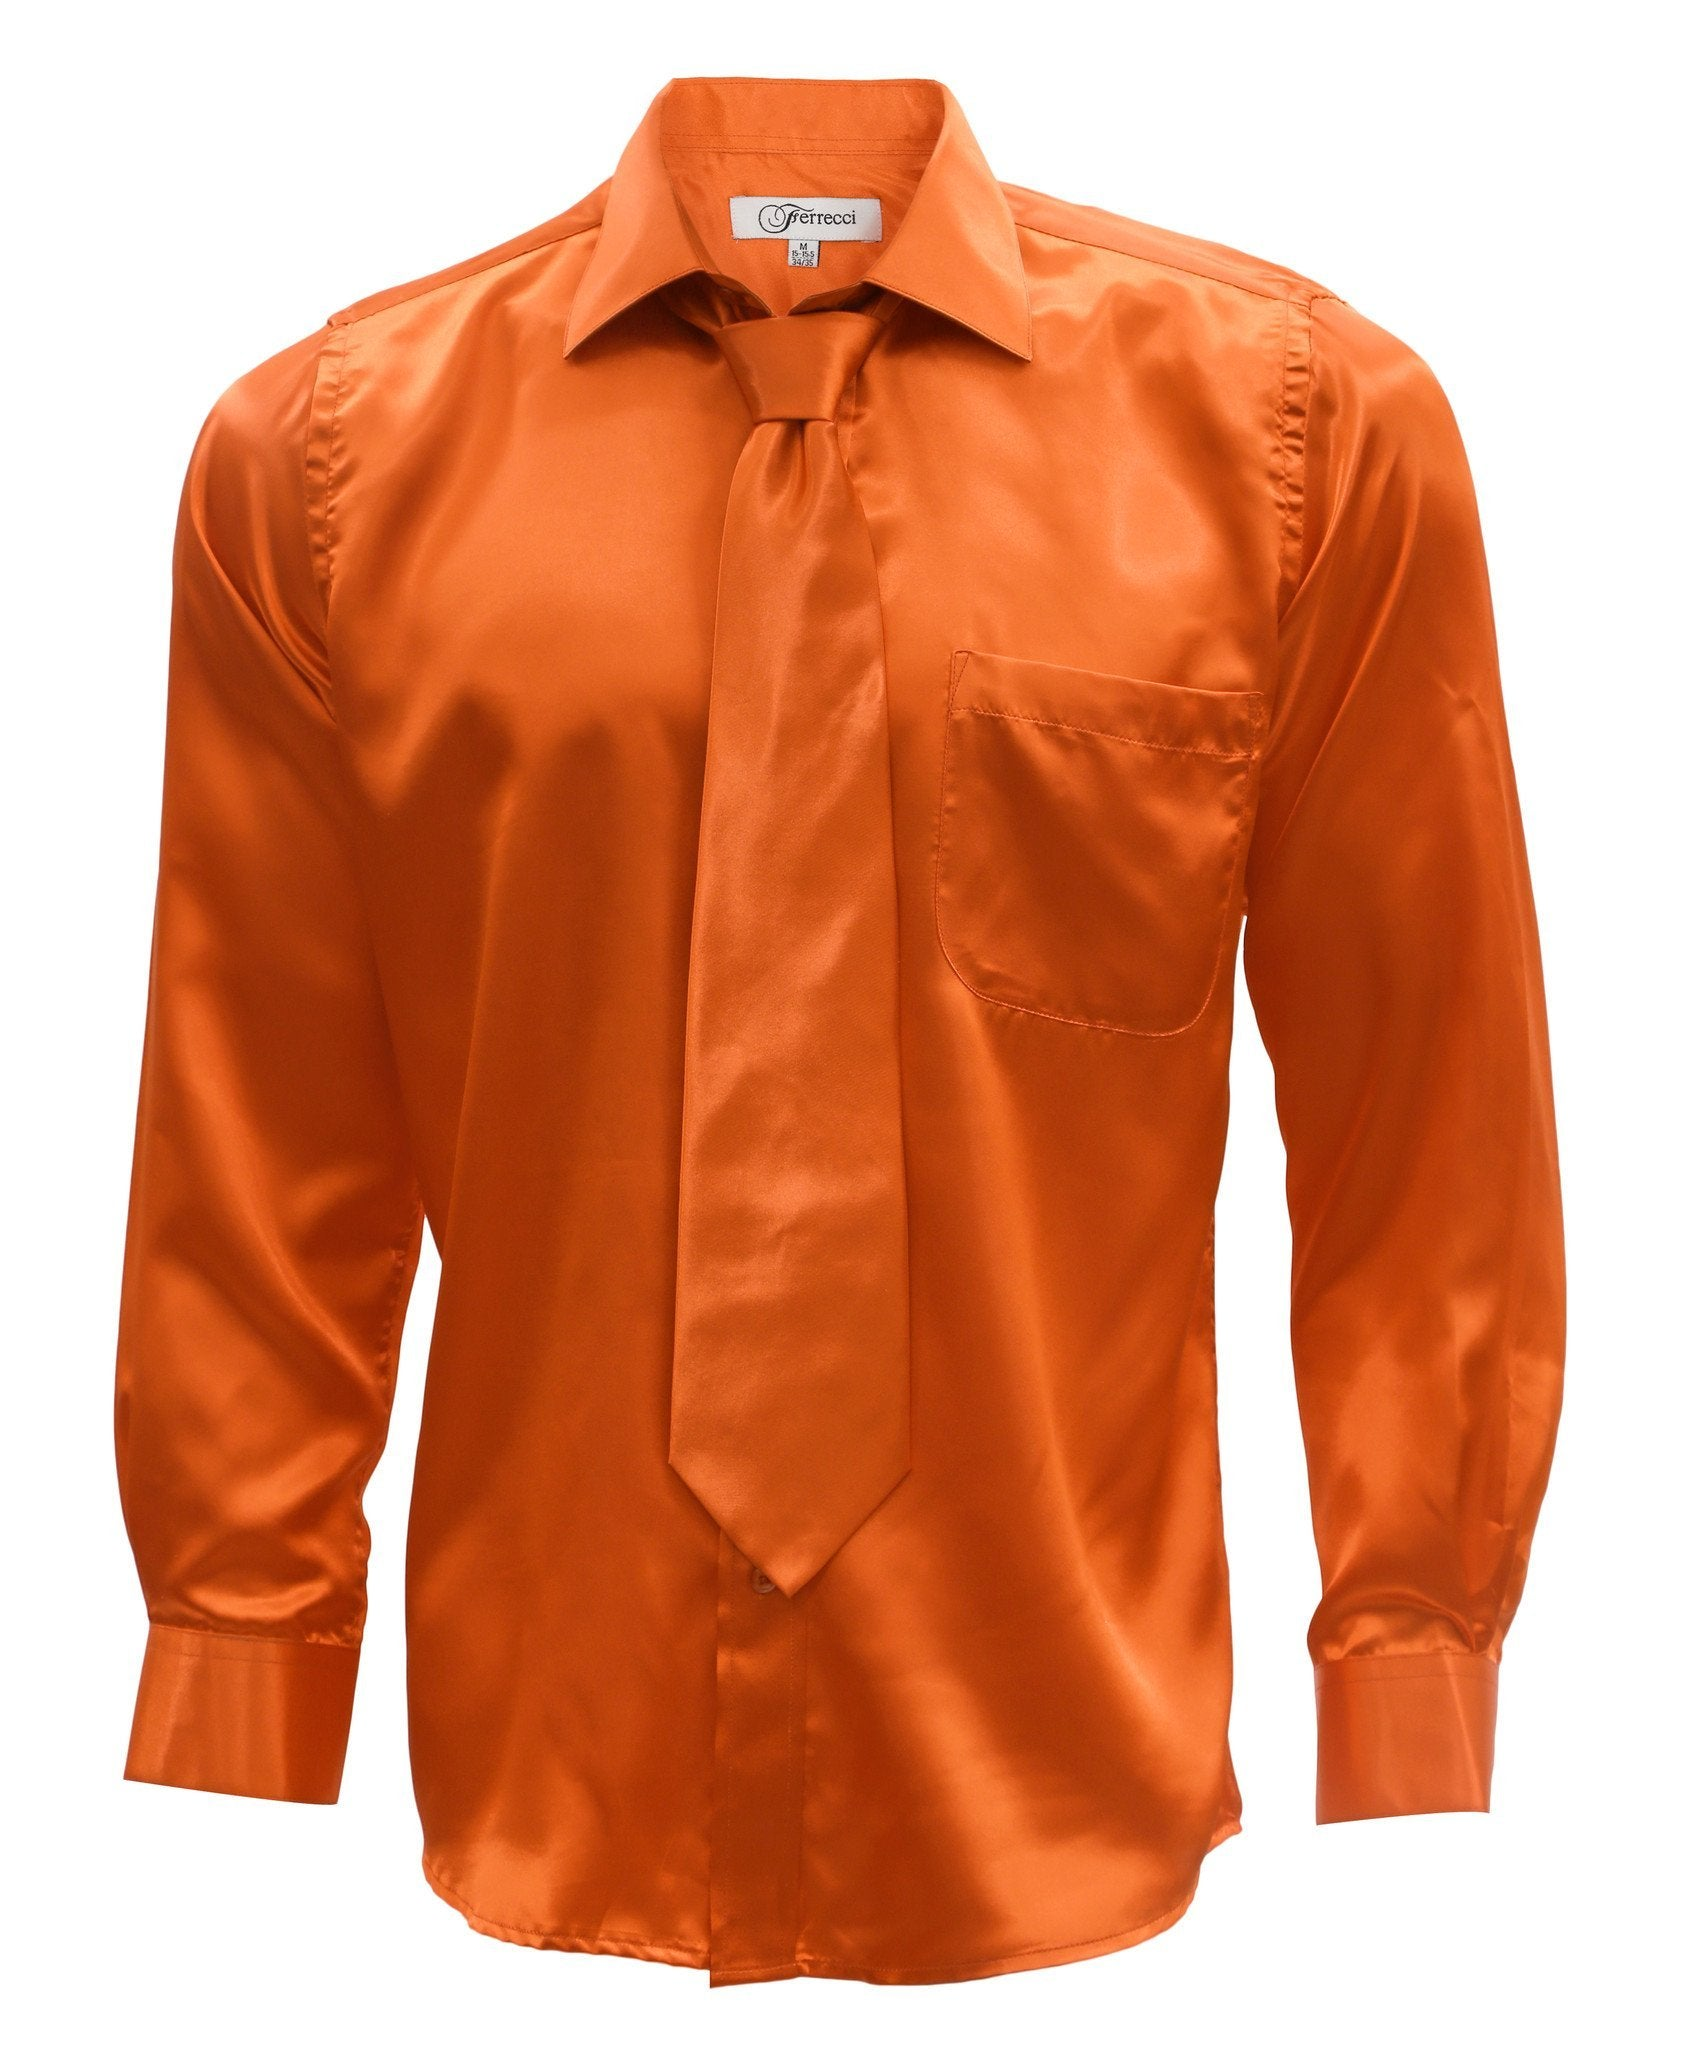 Burnt Orange Satin Regular Fit Dress Shirt, Tie & Hanky Set - Giorgio's Menswear